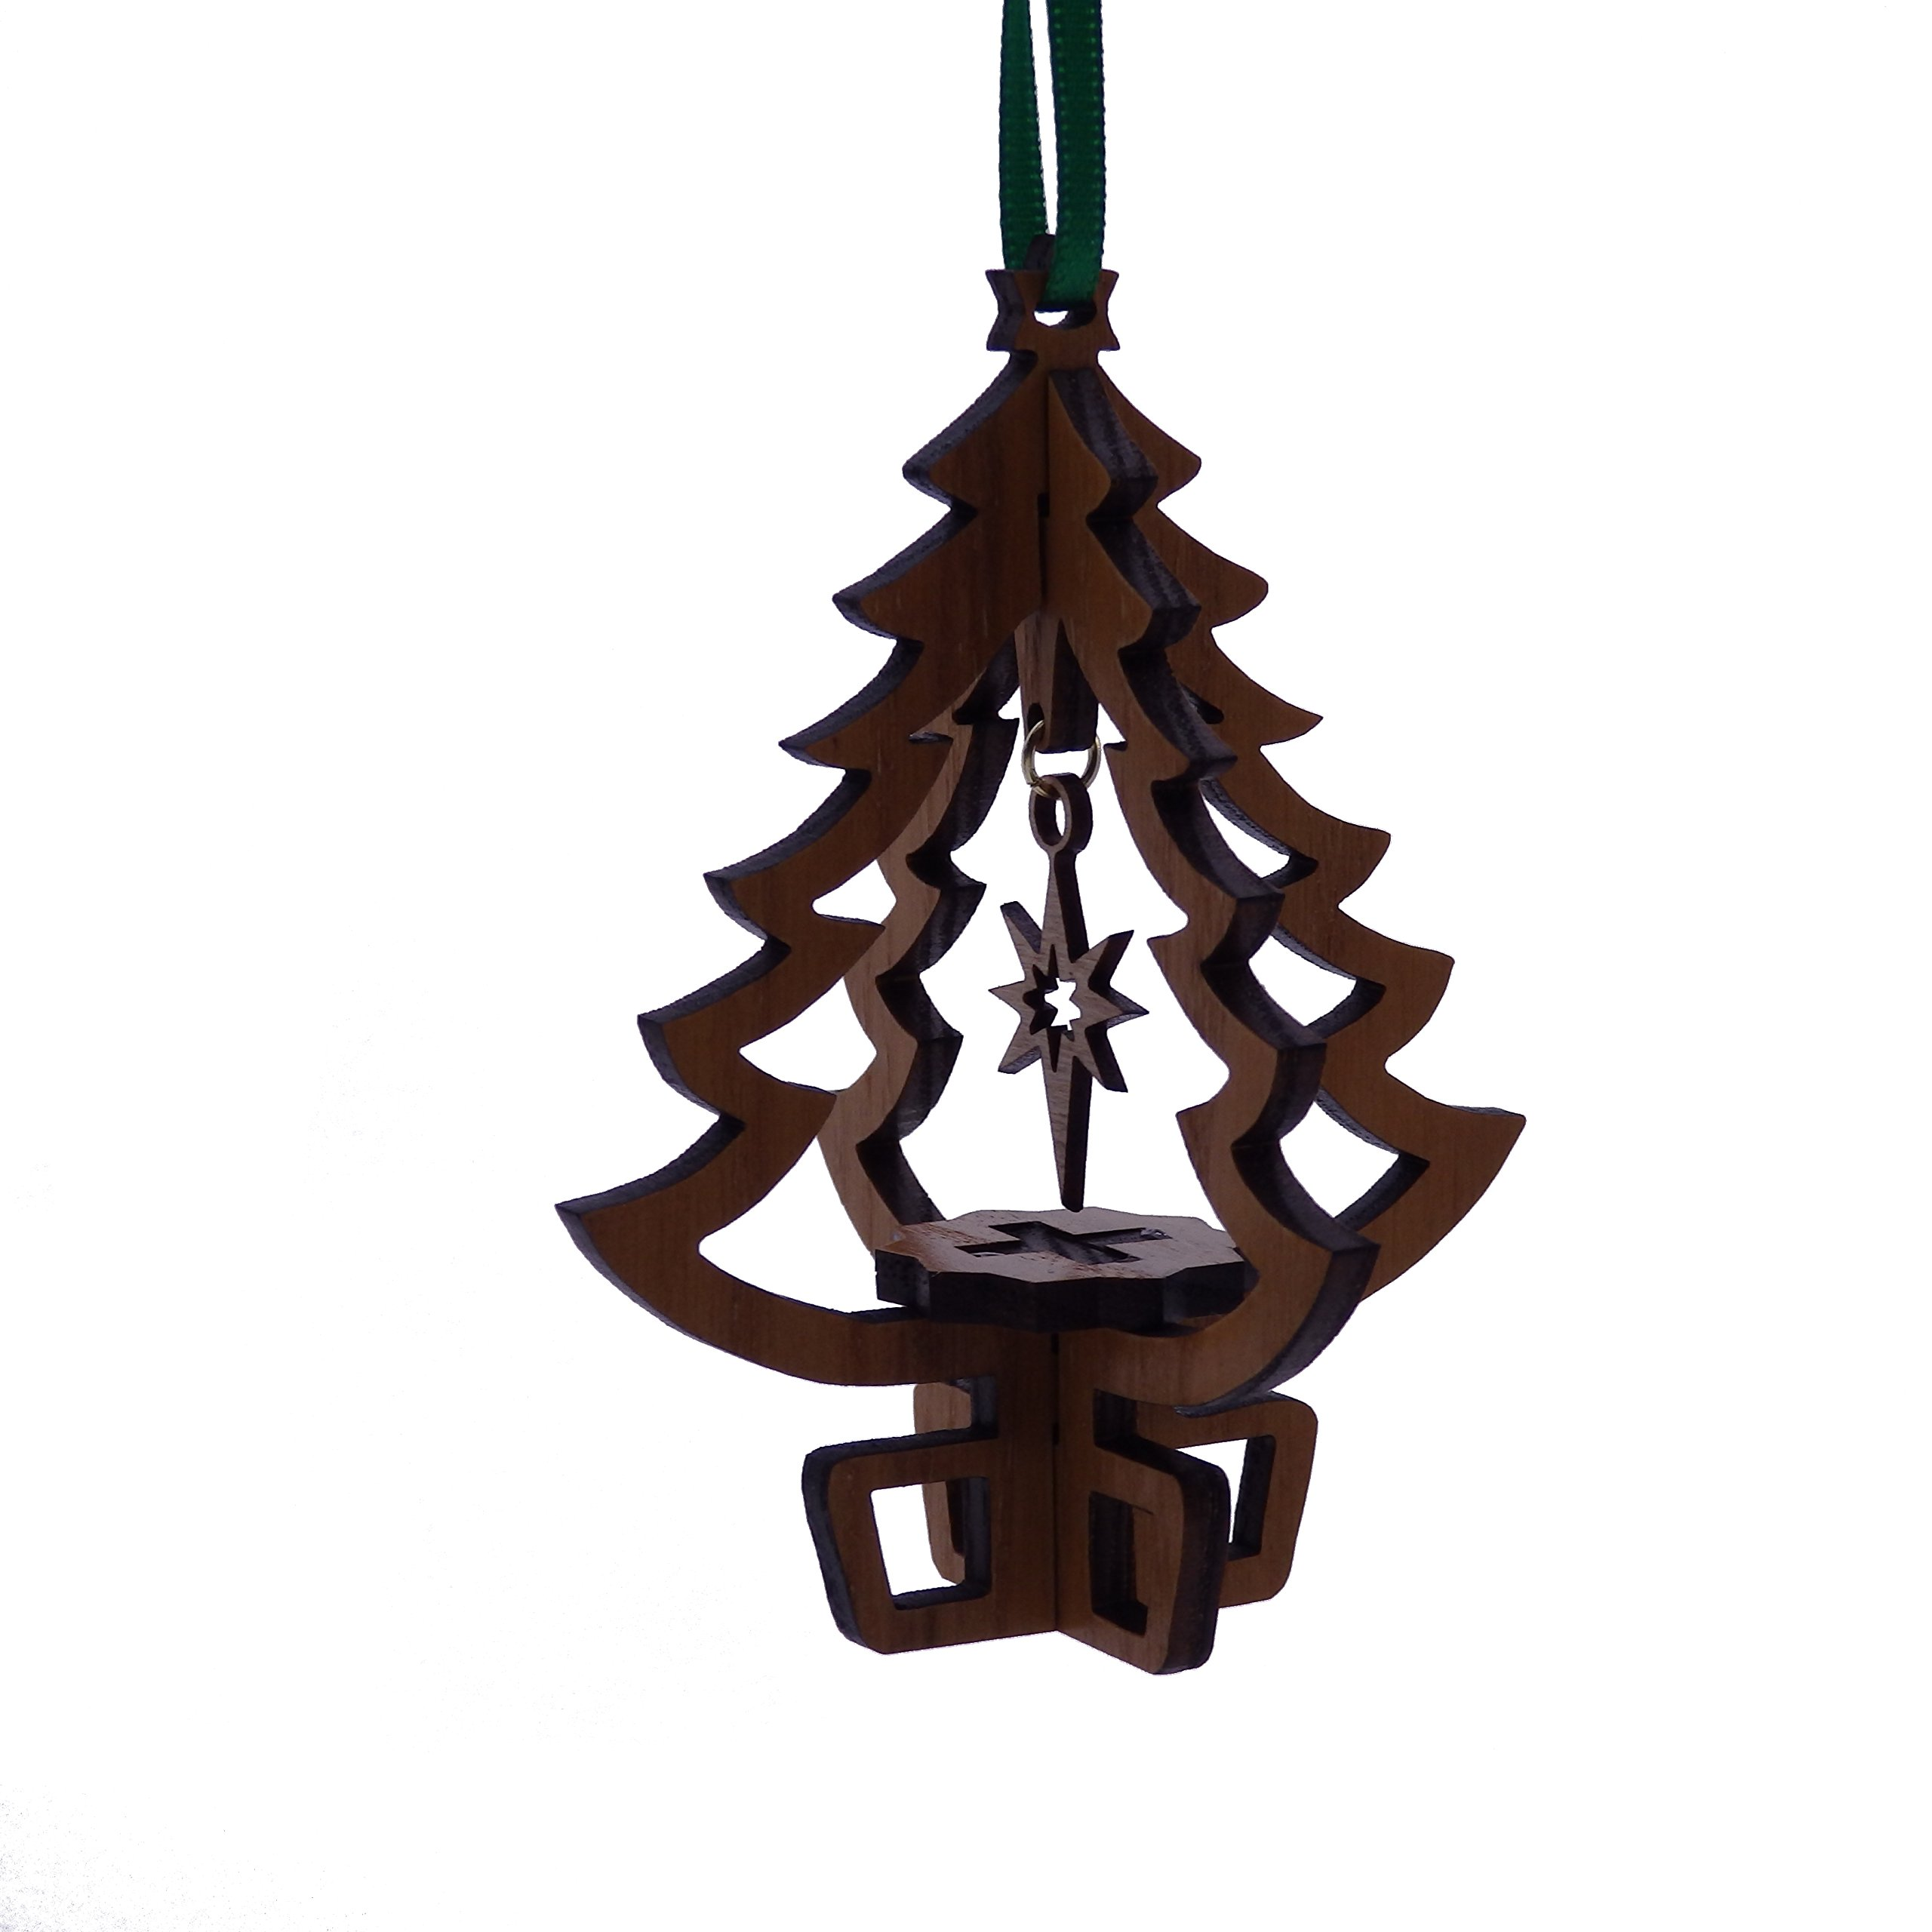 Wooden Holiday Tree Ornament with Star - Gift Boxed - Made in maine